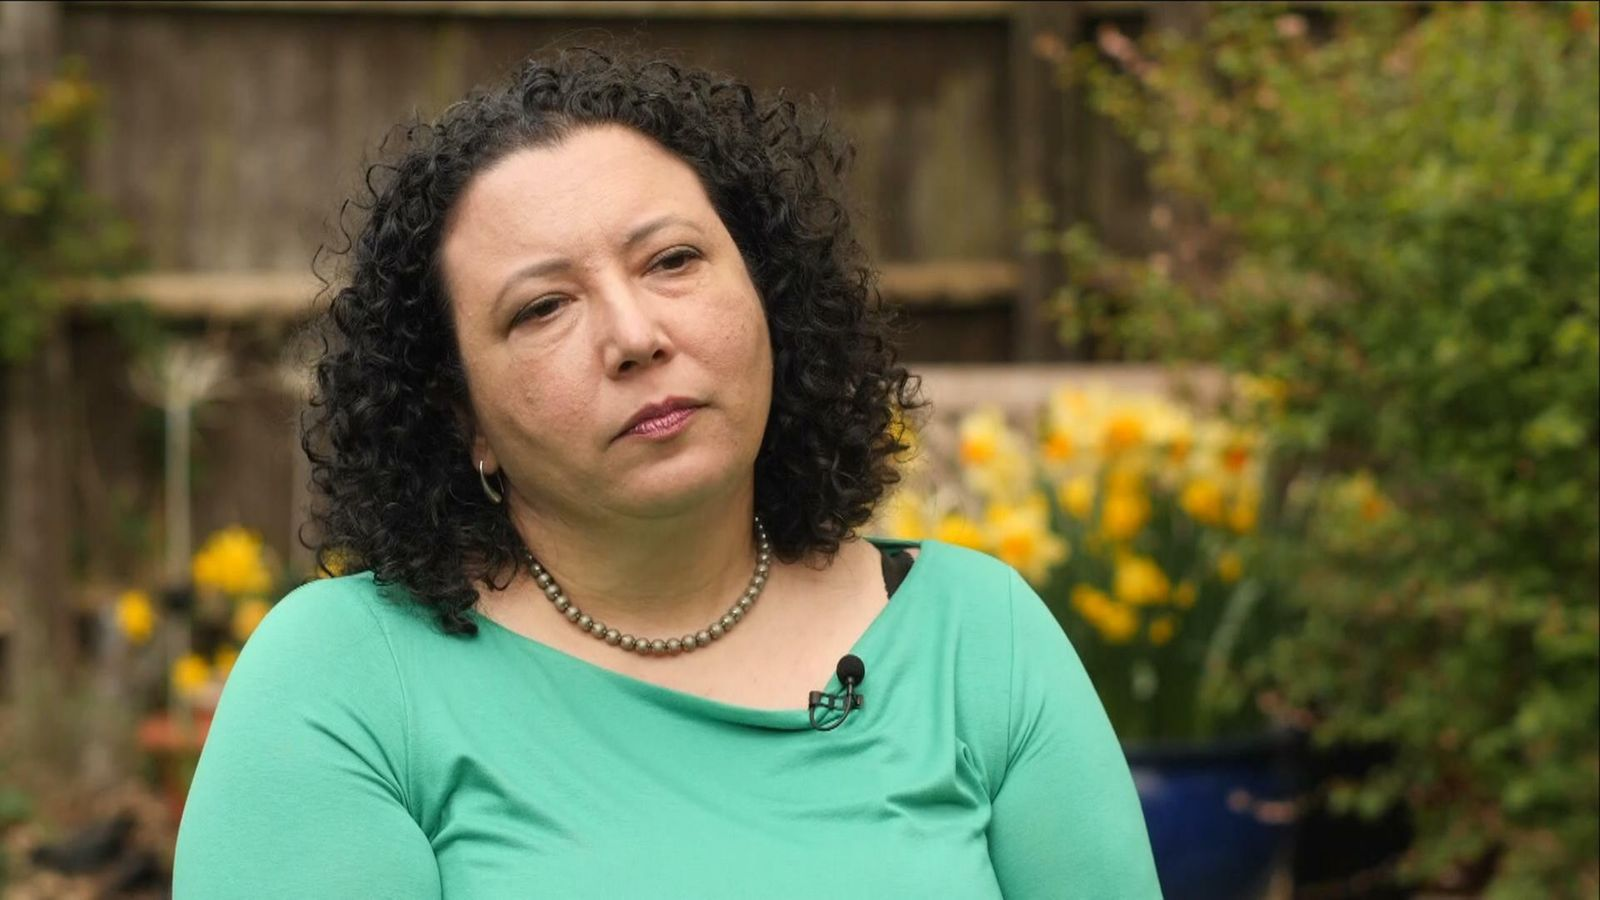 Woman Who Lost Job Over Transgender Views Wins Appeal Against Employment Tribunal